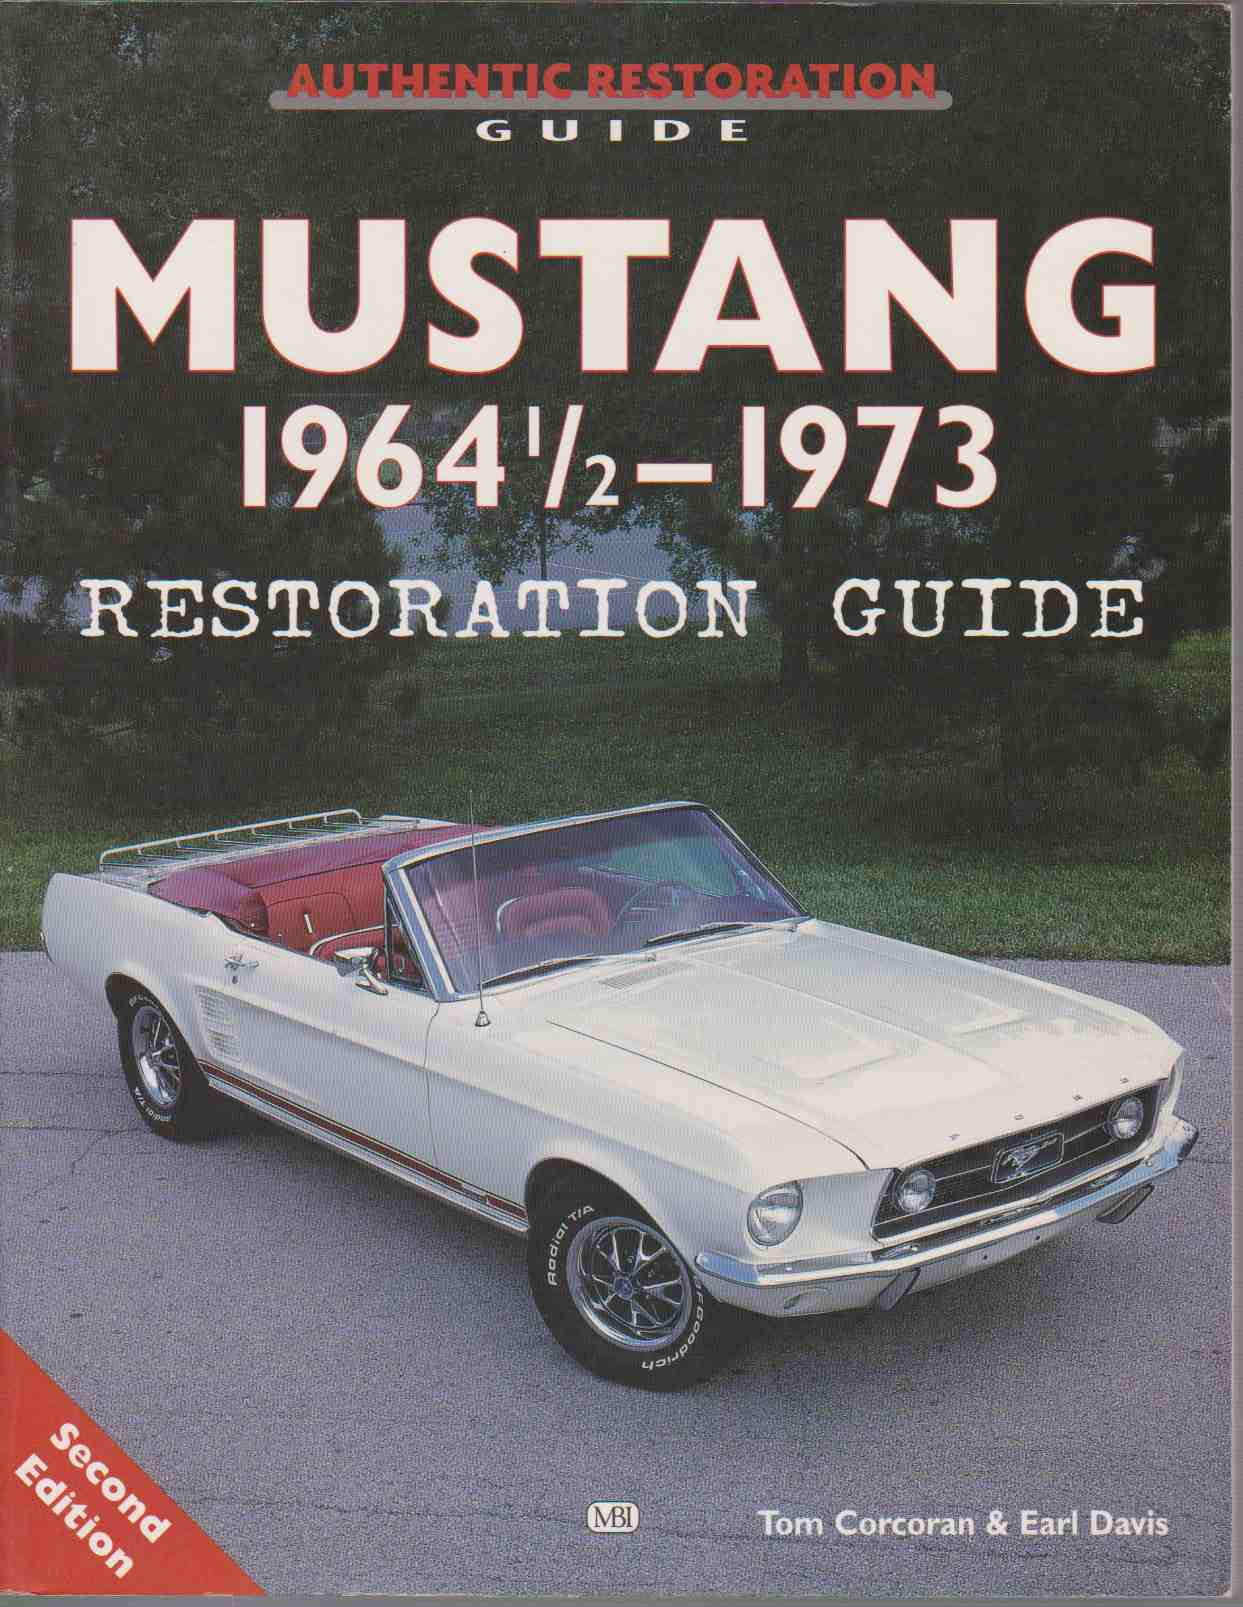 Image for MUSTANG 1964 1/2 - 73 RESTORATION GUIDE